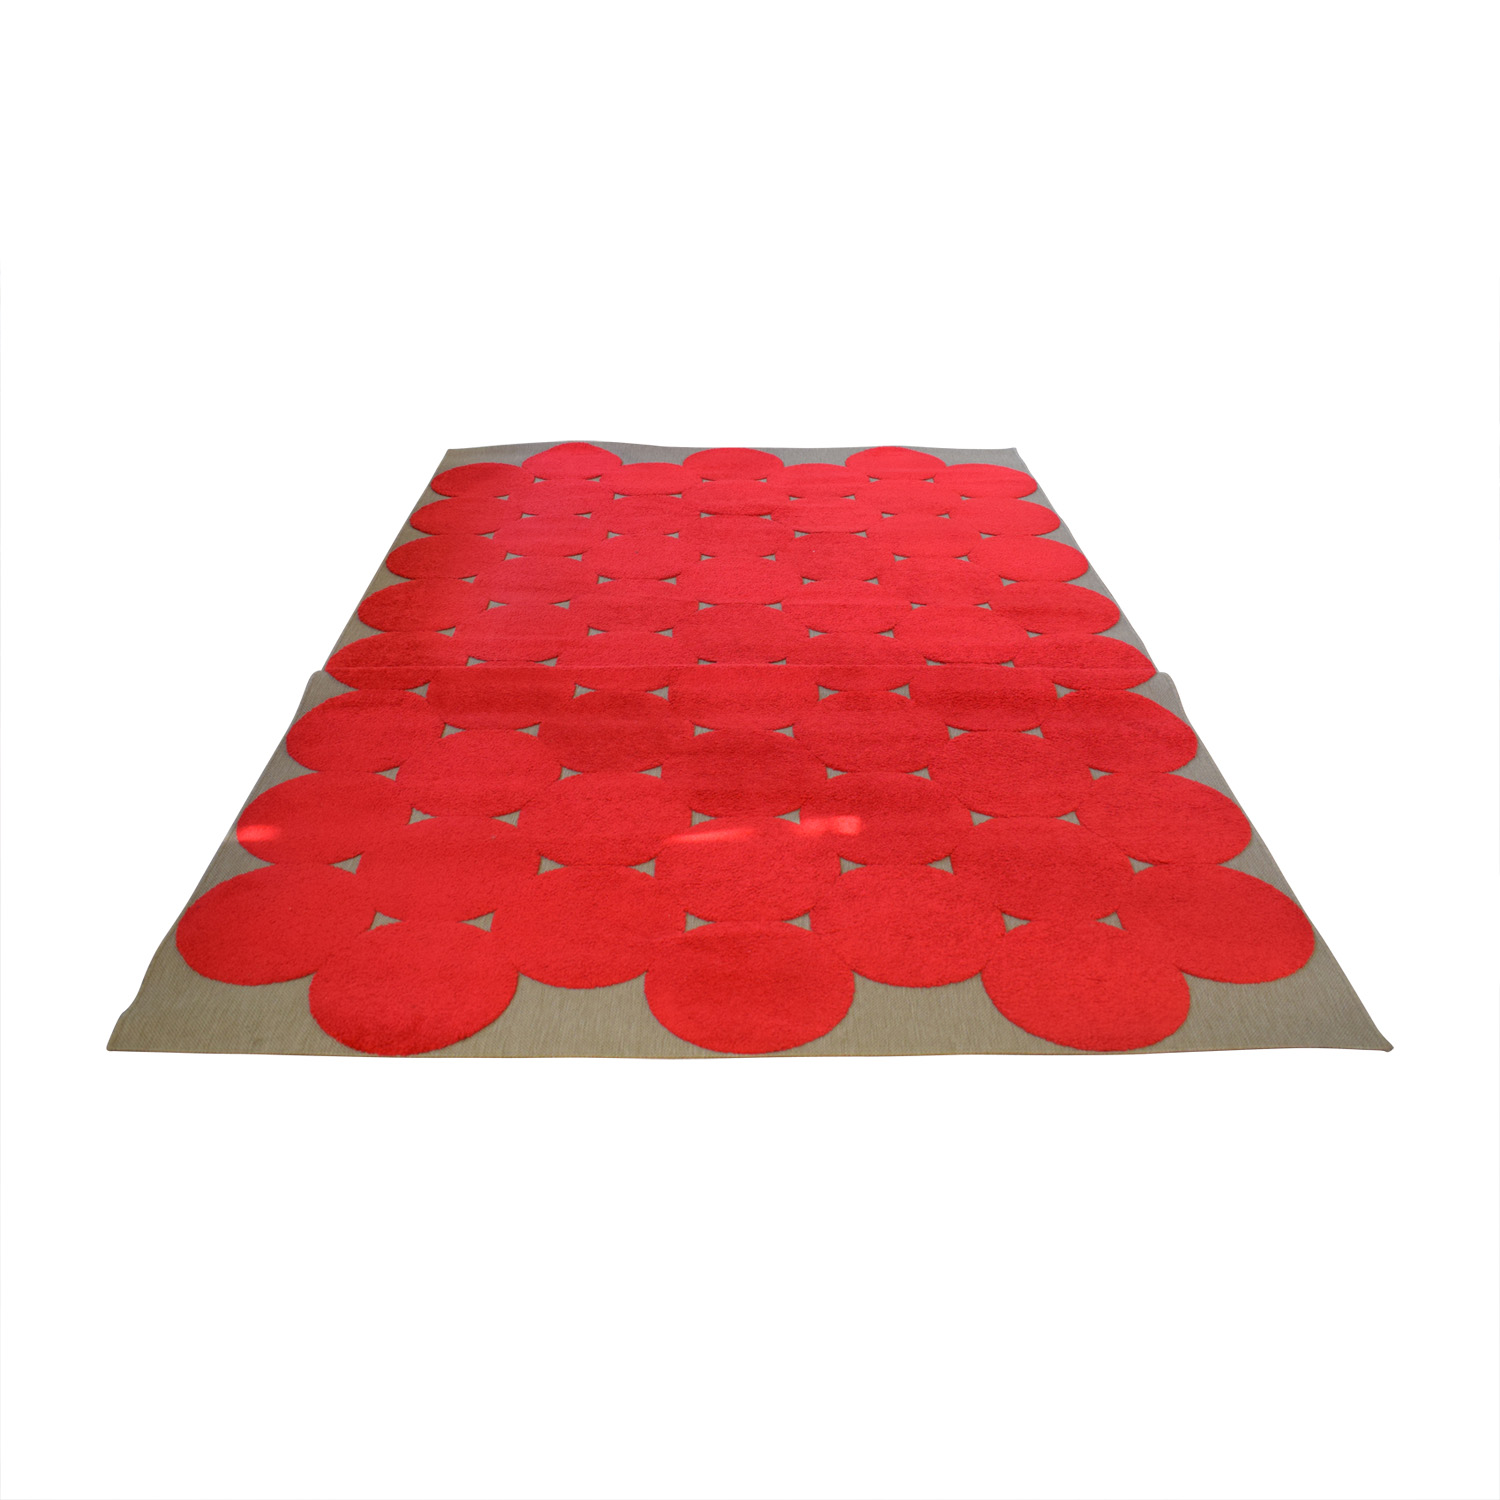 Ikea Red Circle Rug Second Hand